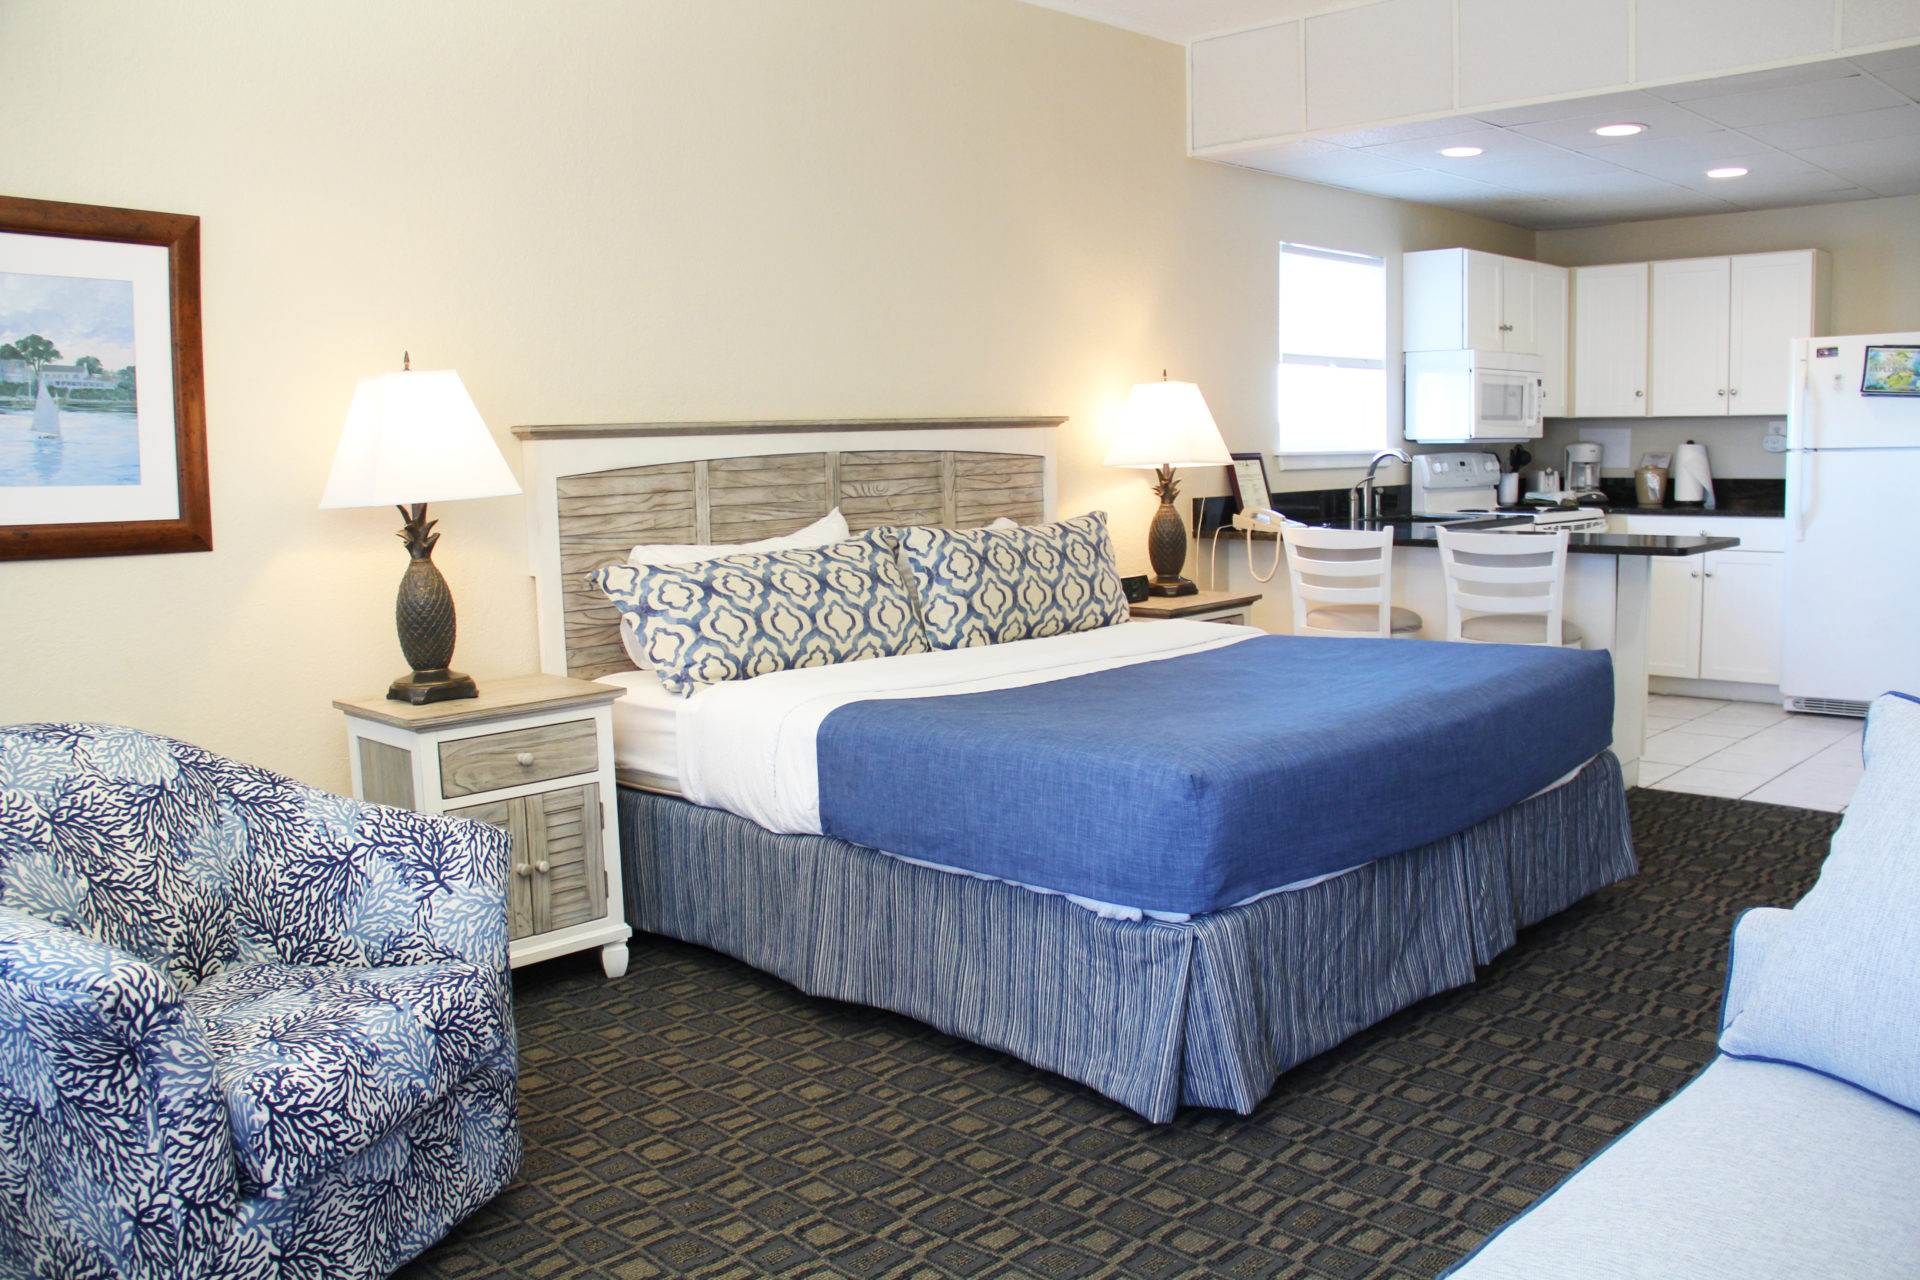 SurfSide Hotel OBX Efficiency3